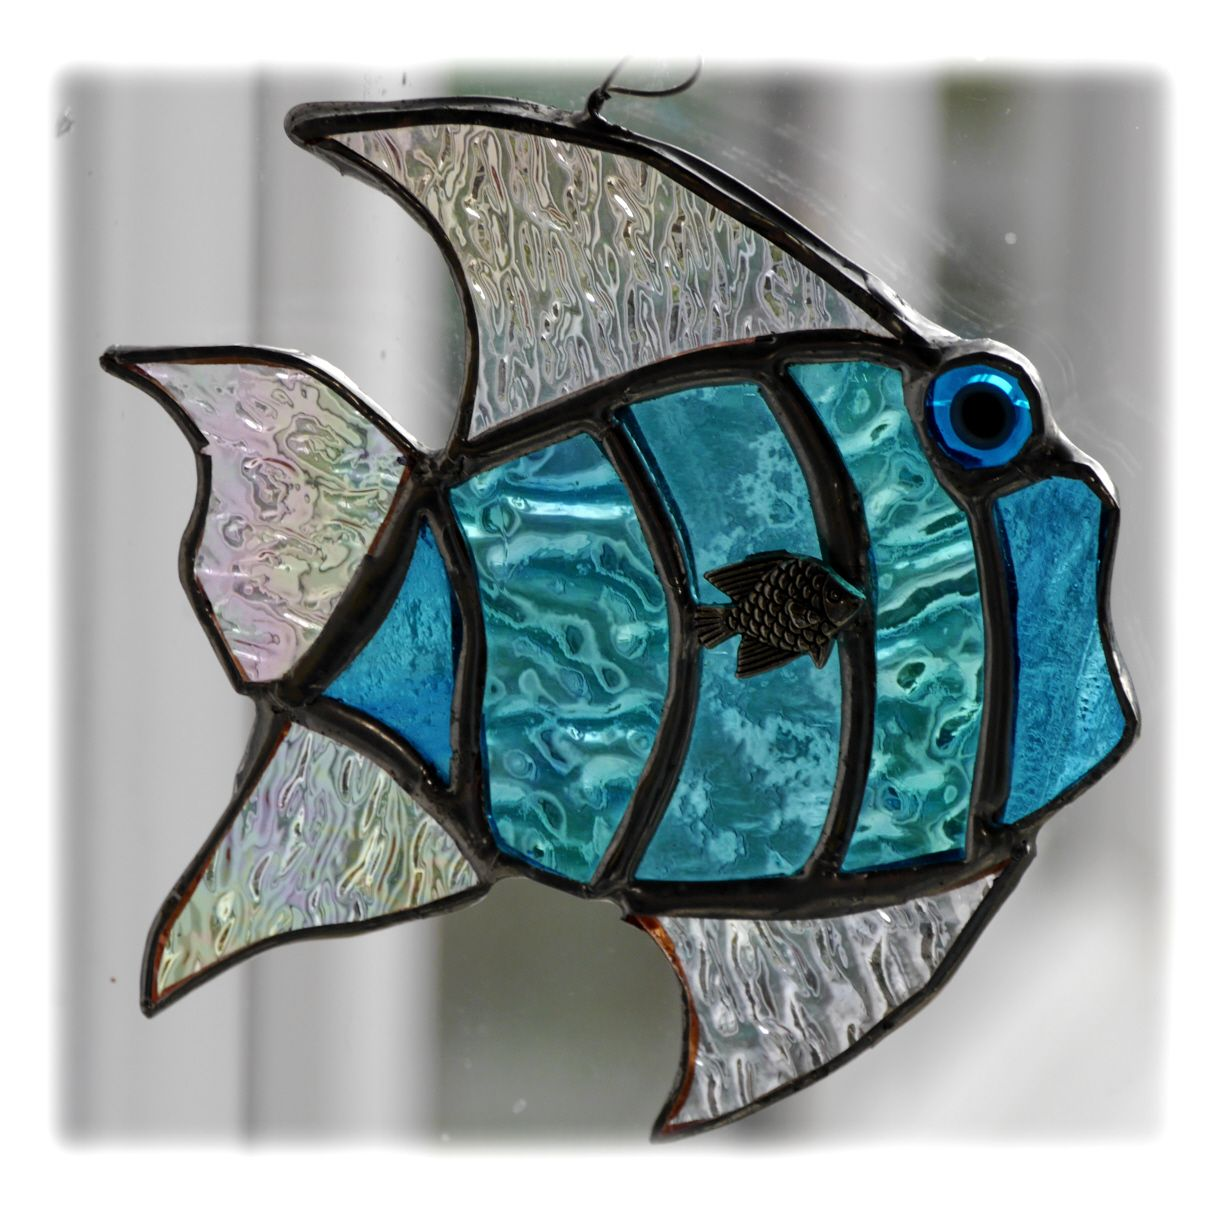 Fish Tropical 027 Turquoise #1907 FREE 13.00